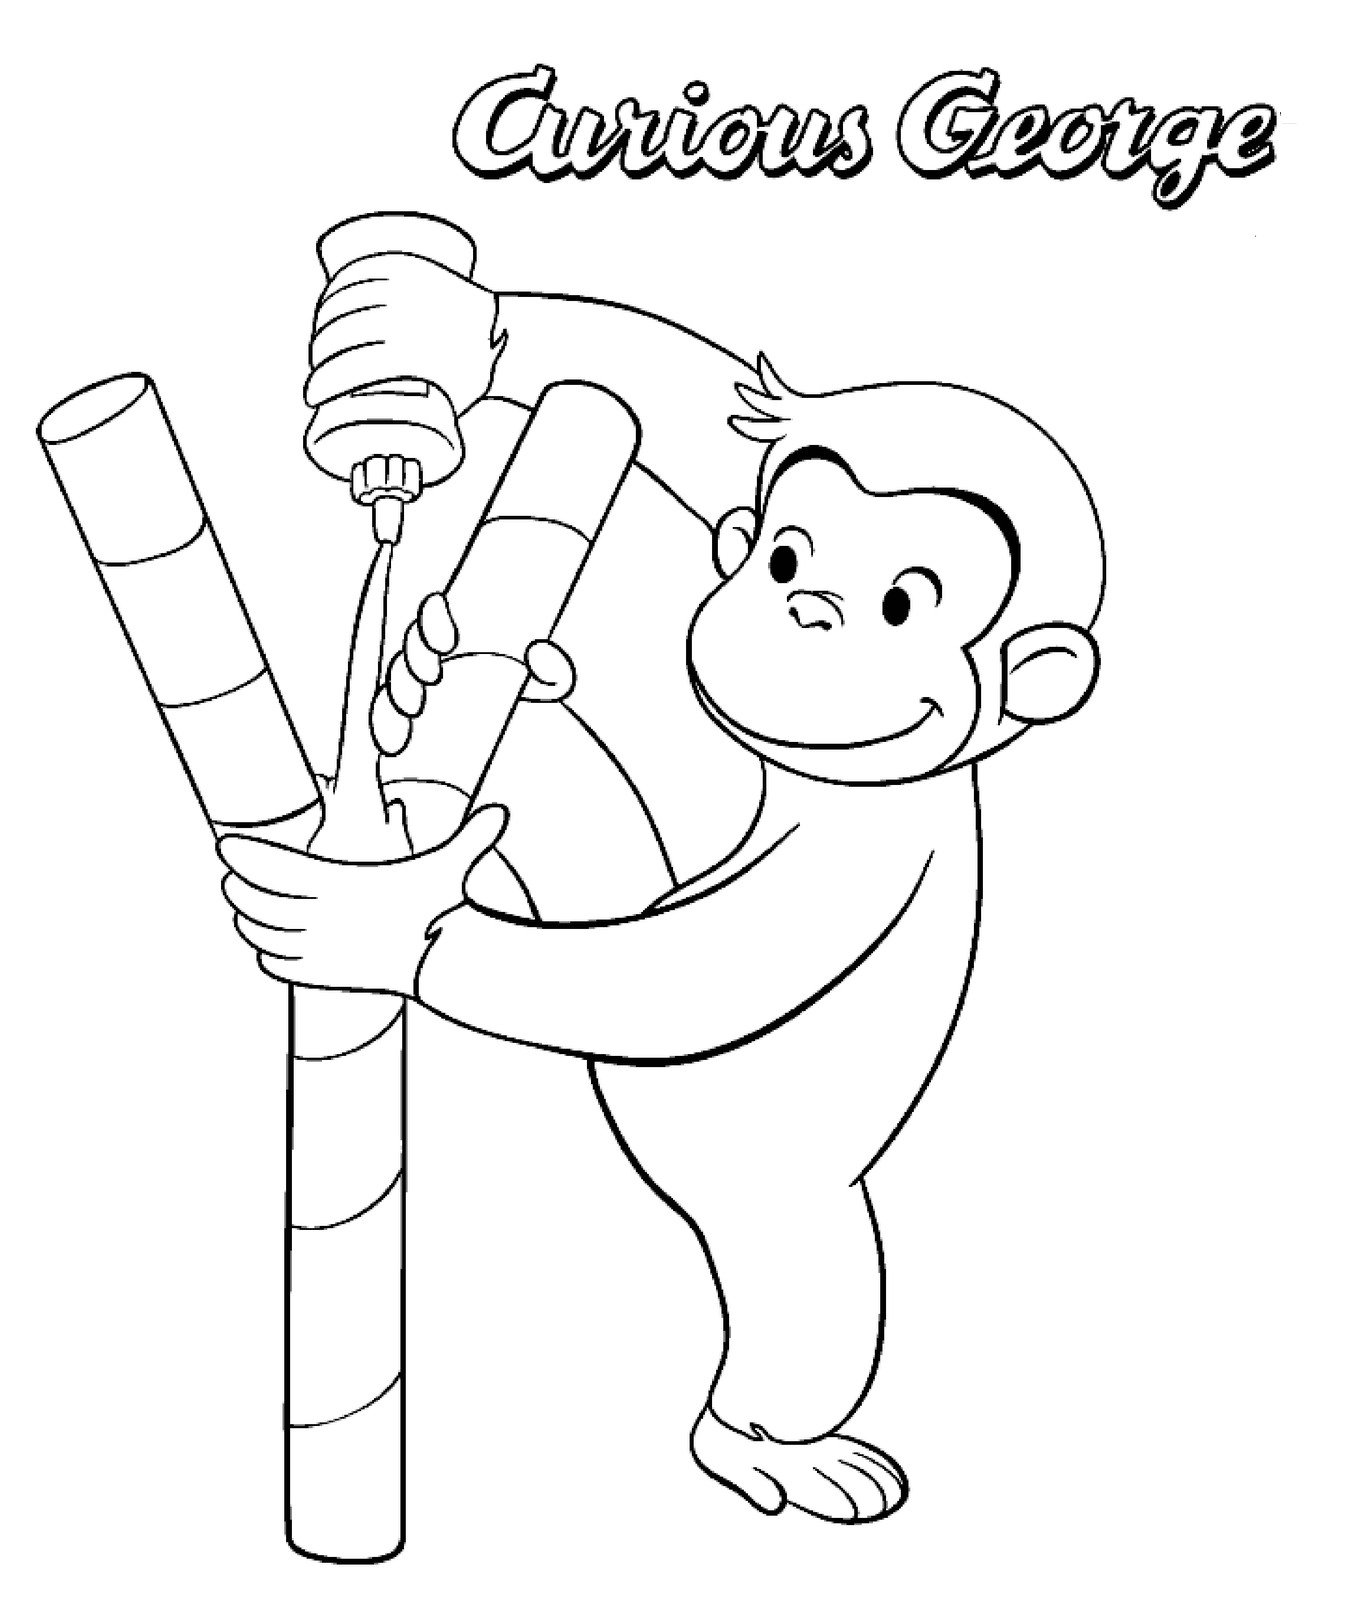 curious george coloring pages on coloring bookinfo the name jorge